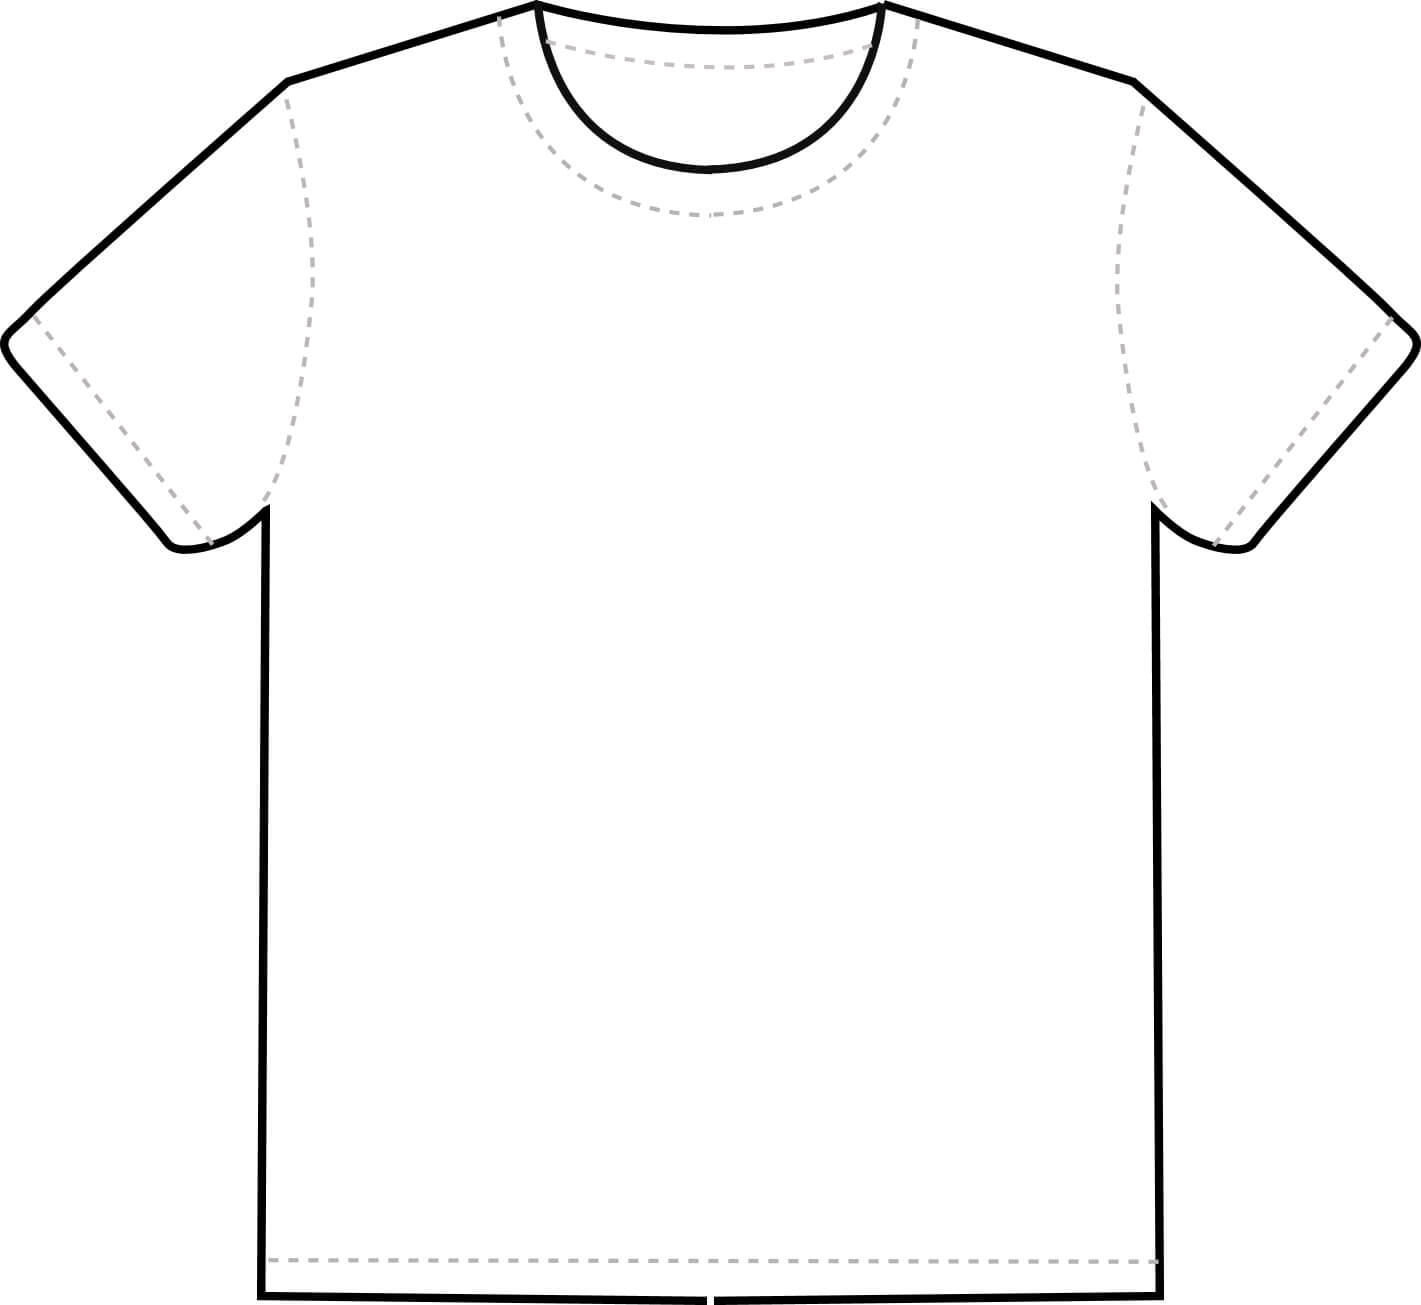 Free Blank T Shirt Outline, Download Free Clip Art, Free Throughout Blank T Shirt Outline Template